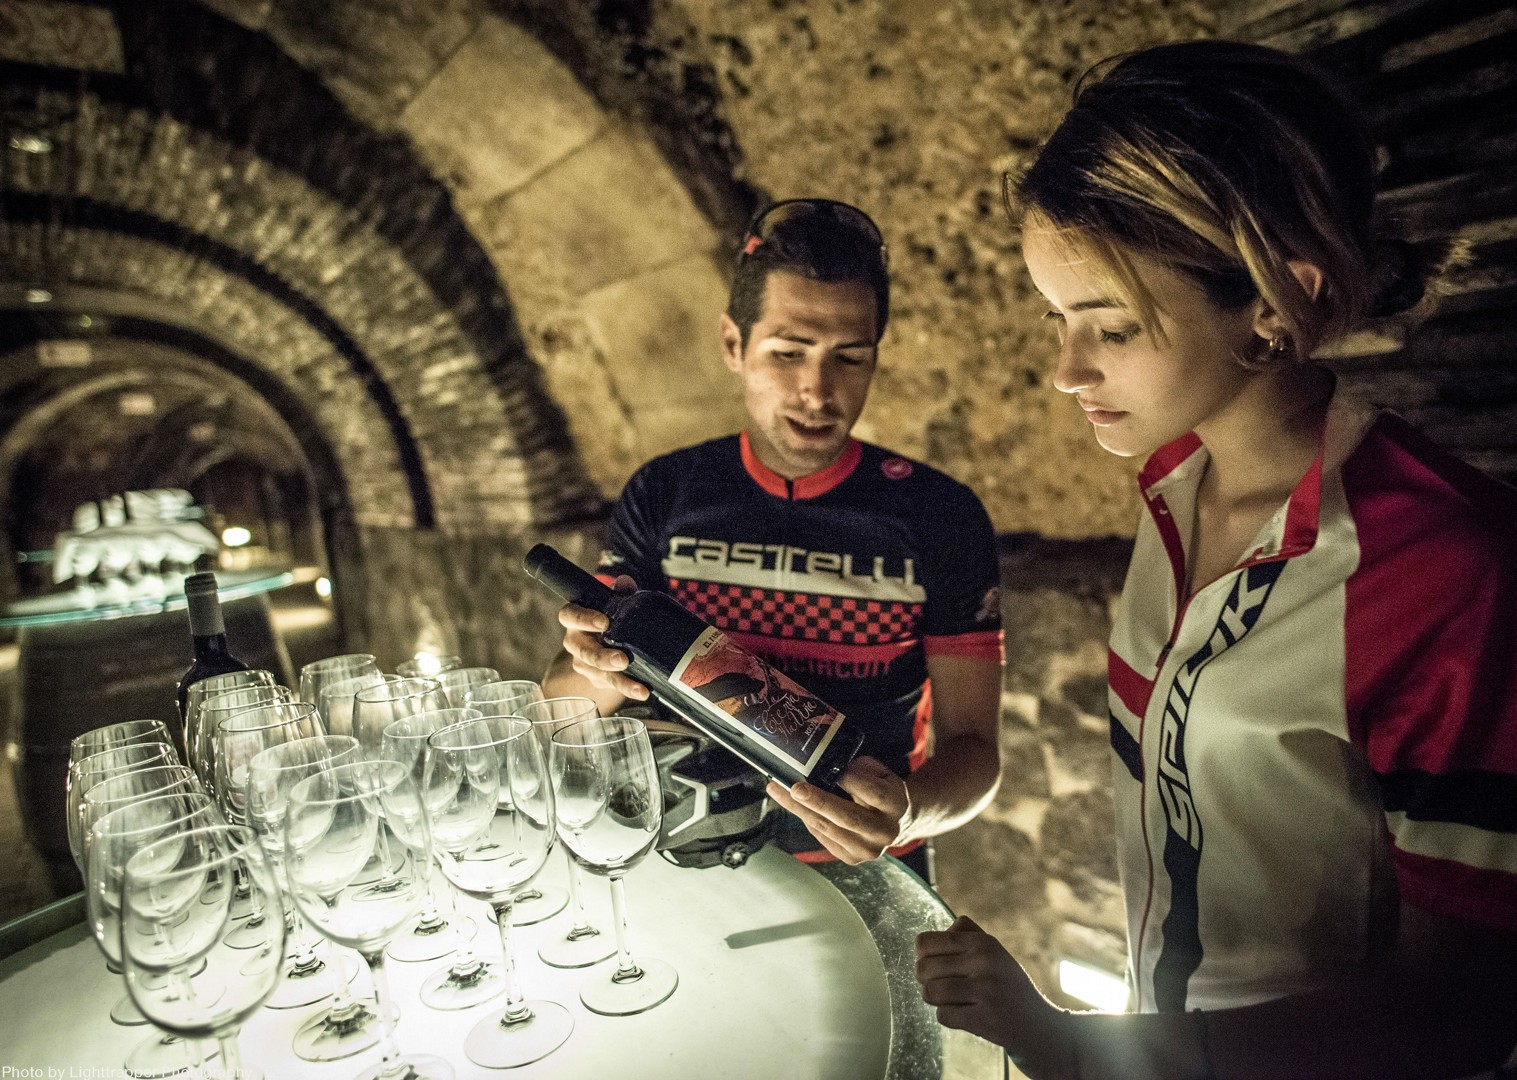 rioja-spain-cycling-wine-tasting.jpg - Northern Spain - La Rioja - Ruta del Vino - Self-Guided Road Cycling Holiday - Road Cycling